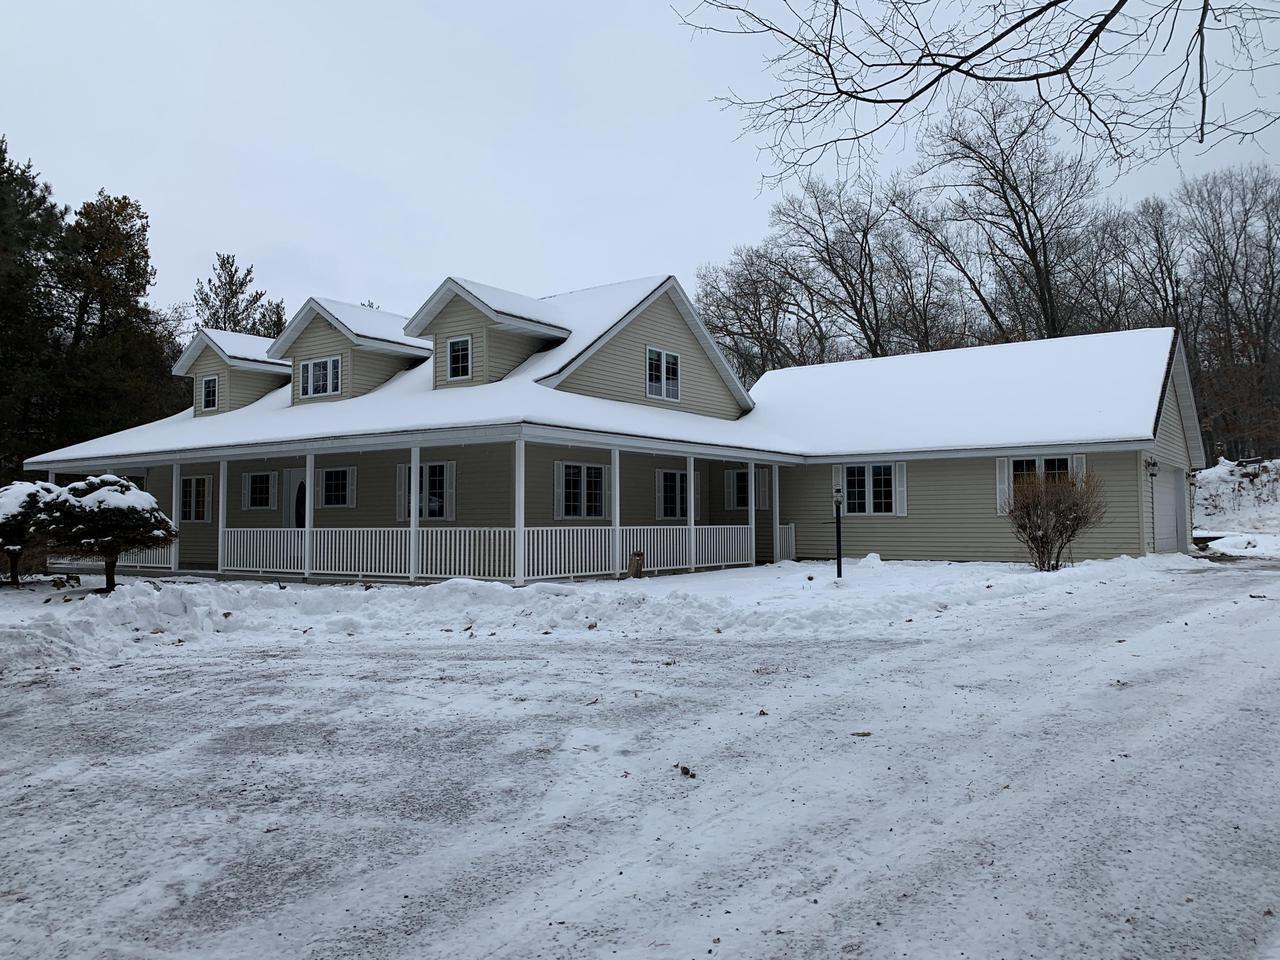 10735 jargon ave sparta wi 54656 mls 1674029 redfin redfin